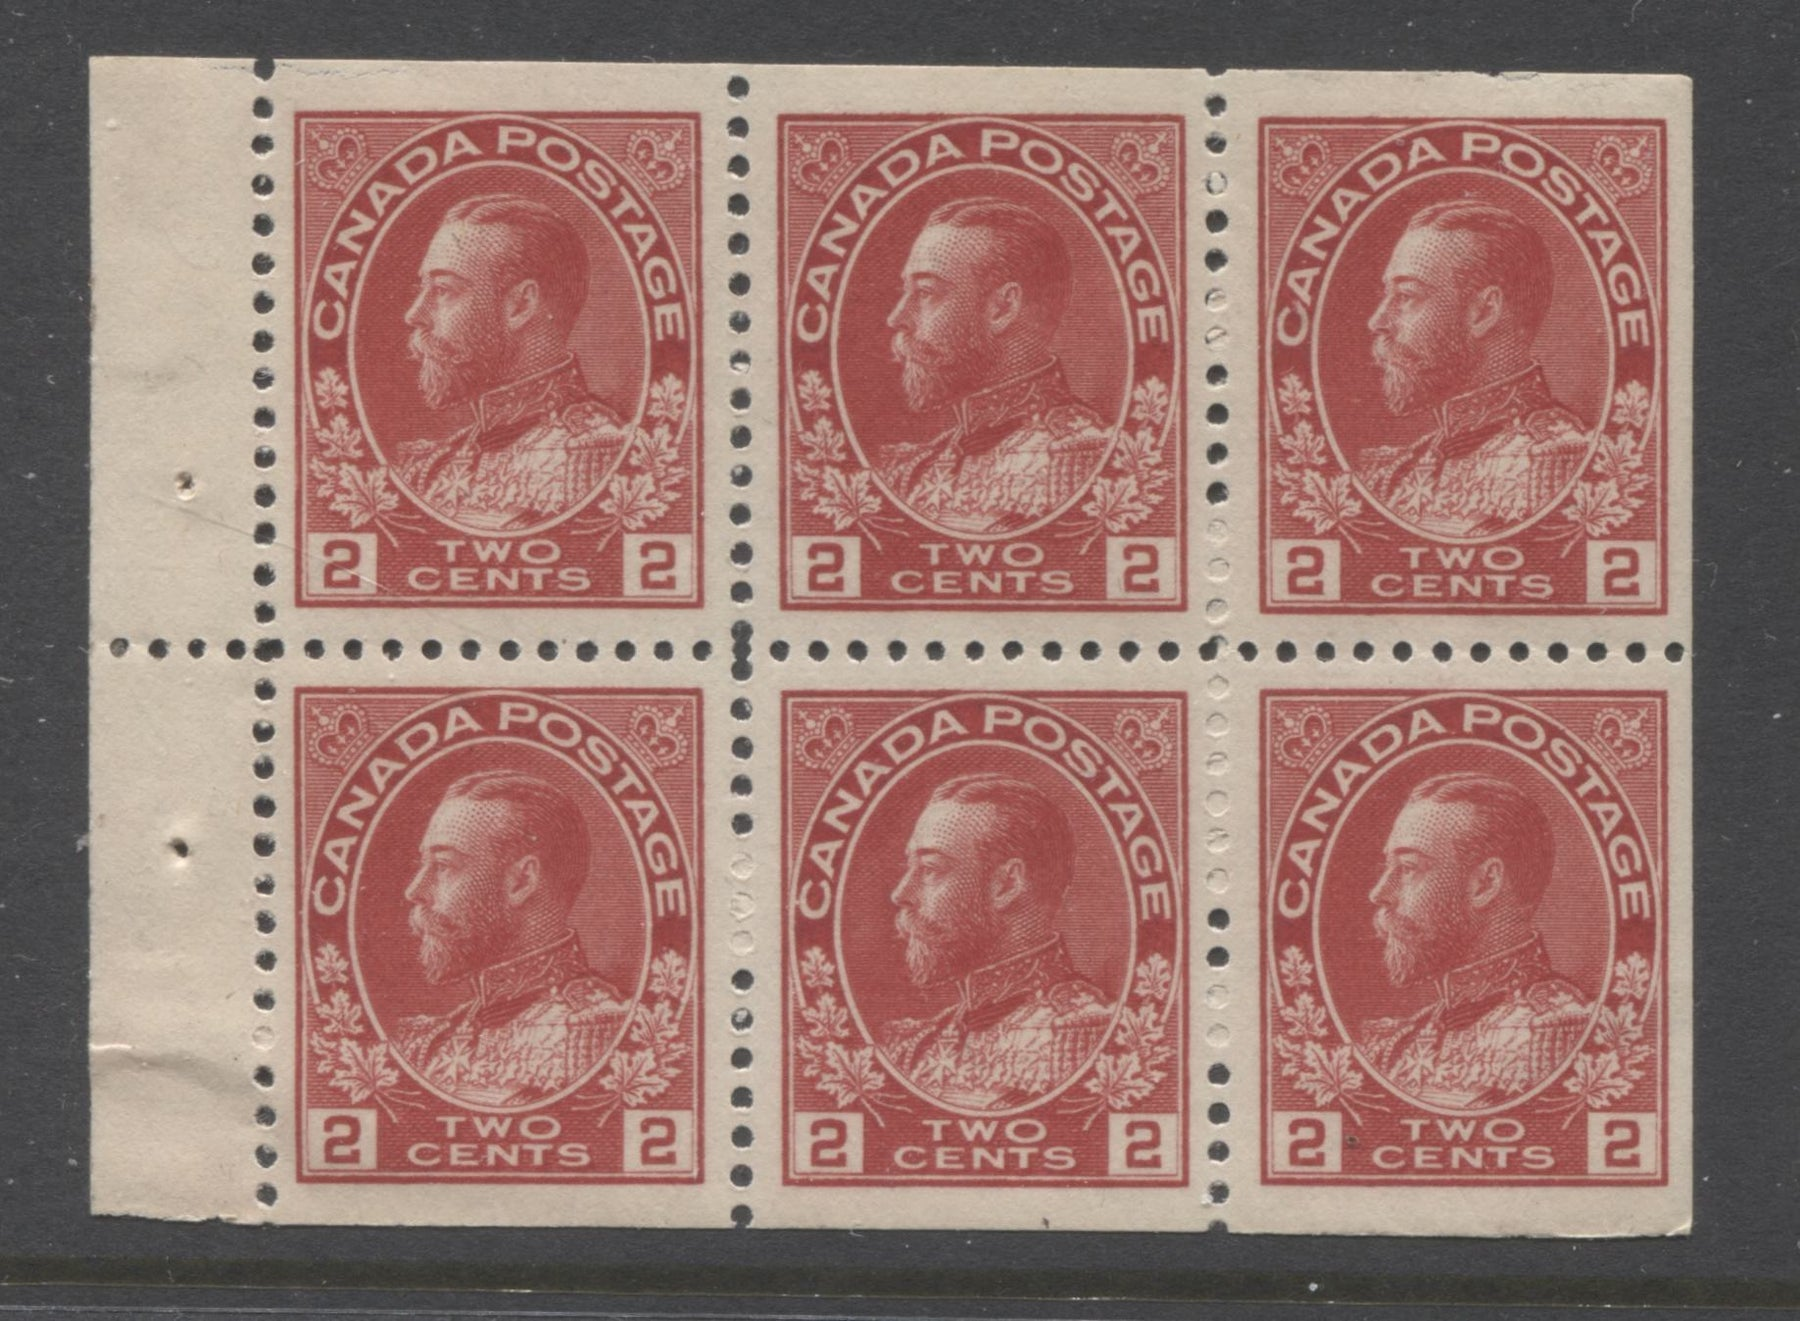 Canada #106a 2c Pale Carmine King George V, 1911-1928 Admiral Issue, Very Fine NH Booklet Pane of 6 of the 17.7 mm x 21.5 mm Wet Printing Brixton Chrome